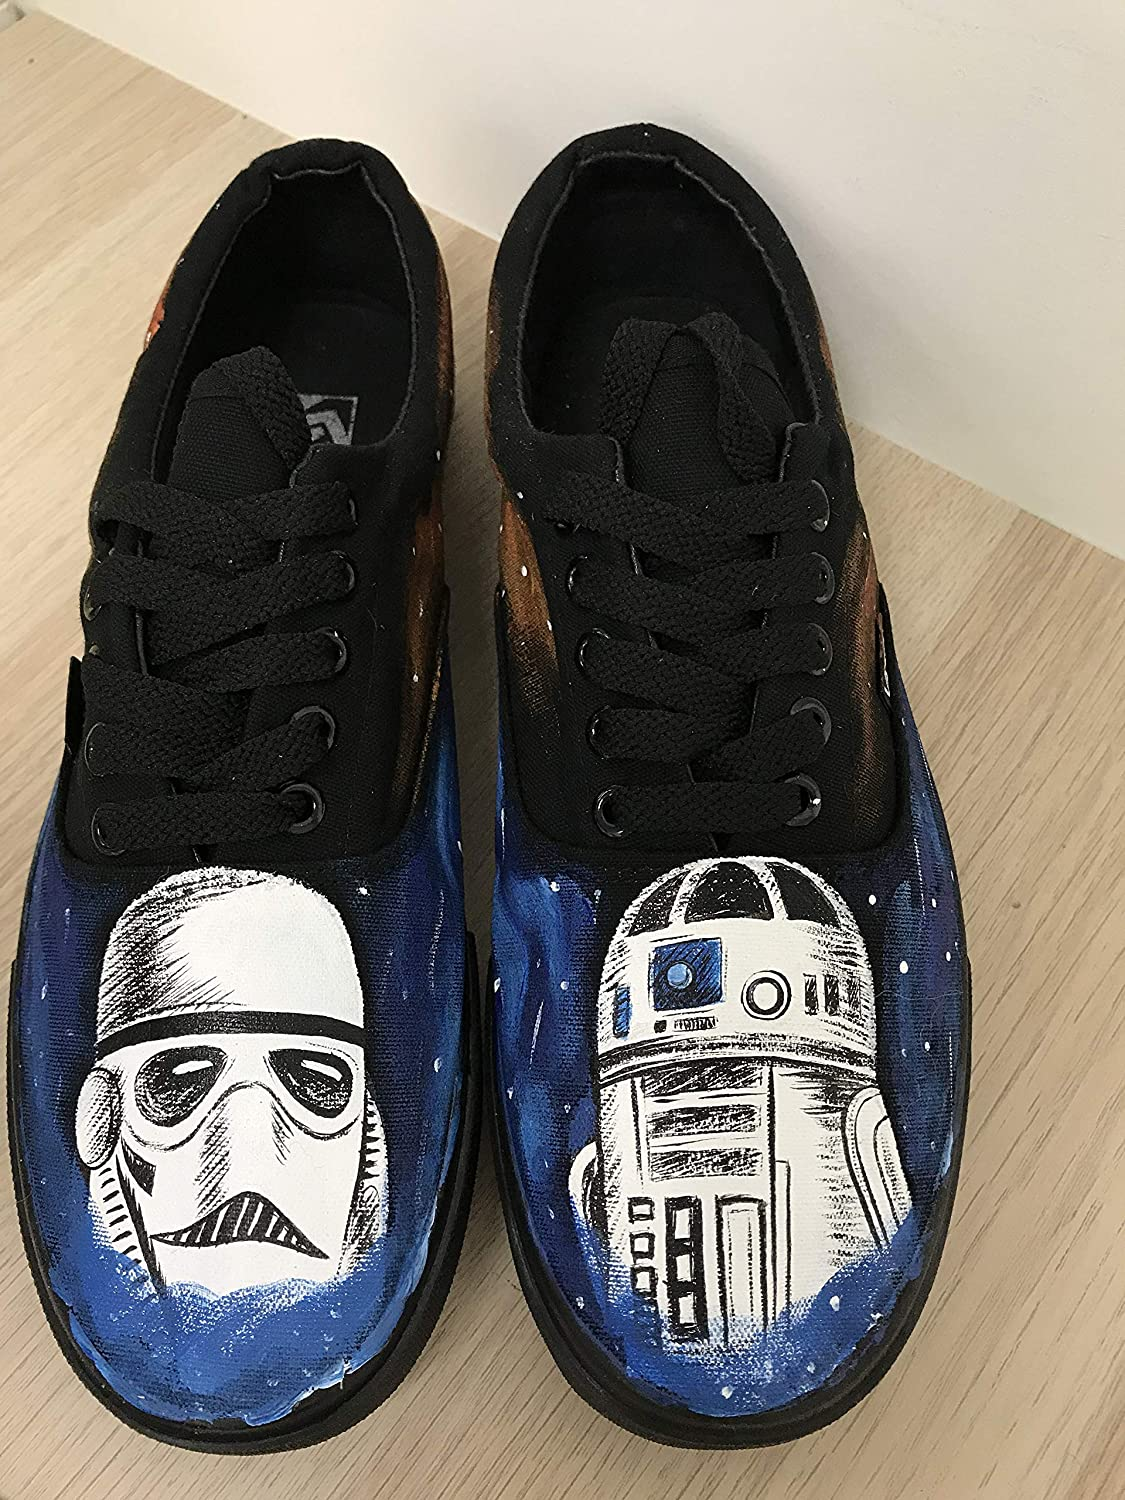 b8ee46dd08 Star Wars Galaxy Vans Shoes Custom Vans Authentic Custom Shoes Vans  Authentic Custom Hand Painted Shoes Hand Painted Vans Authentic Custom Vans  Sneakers ...